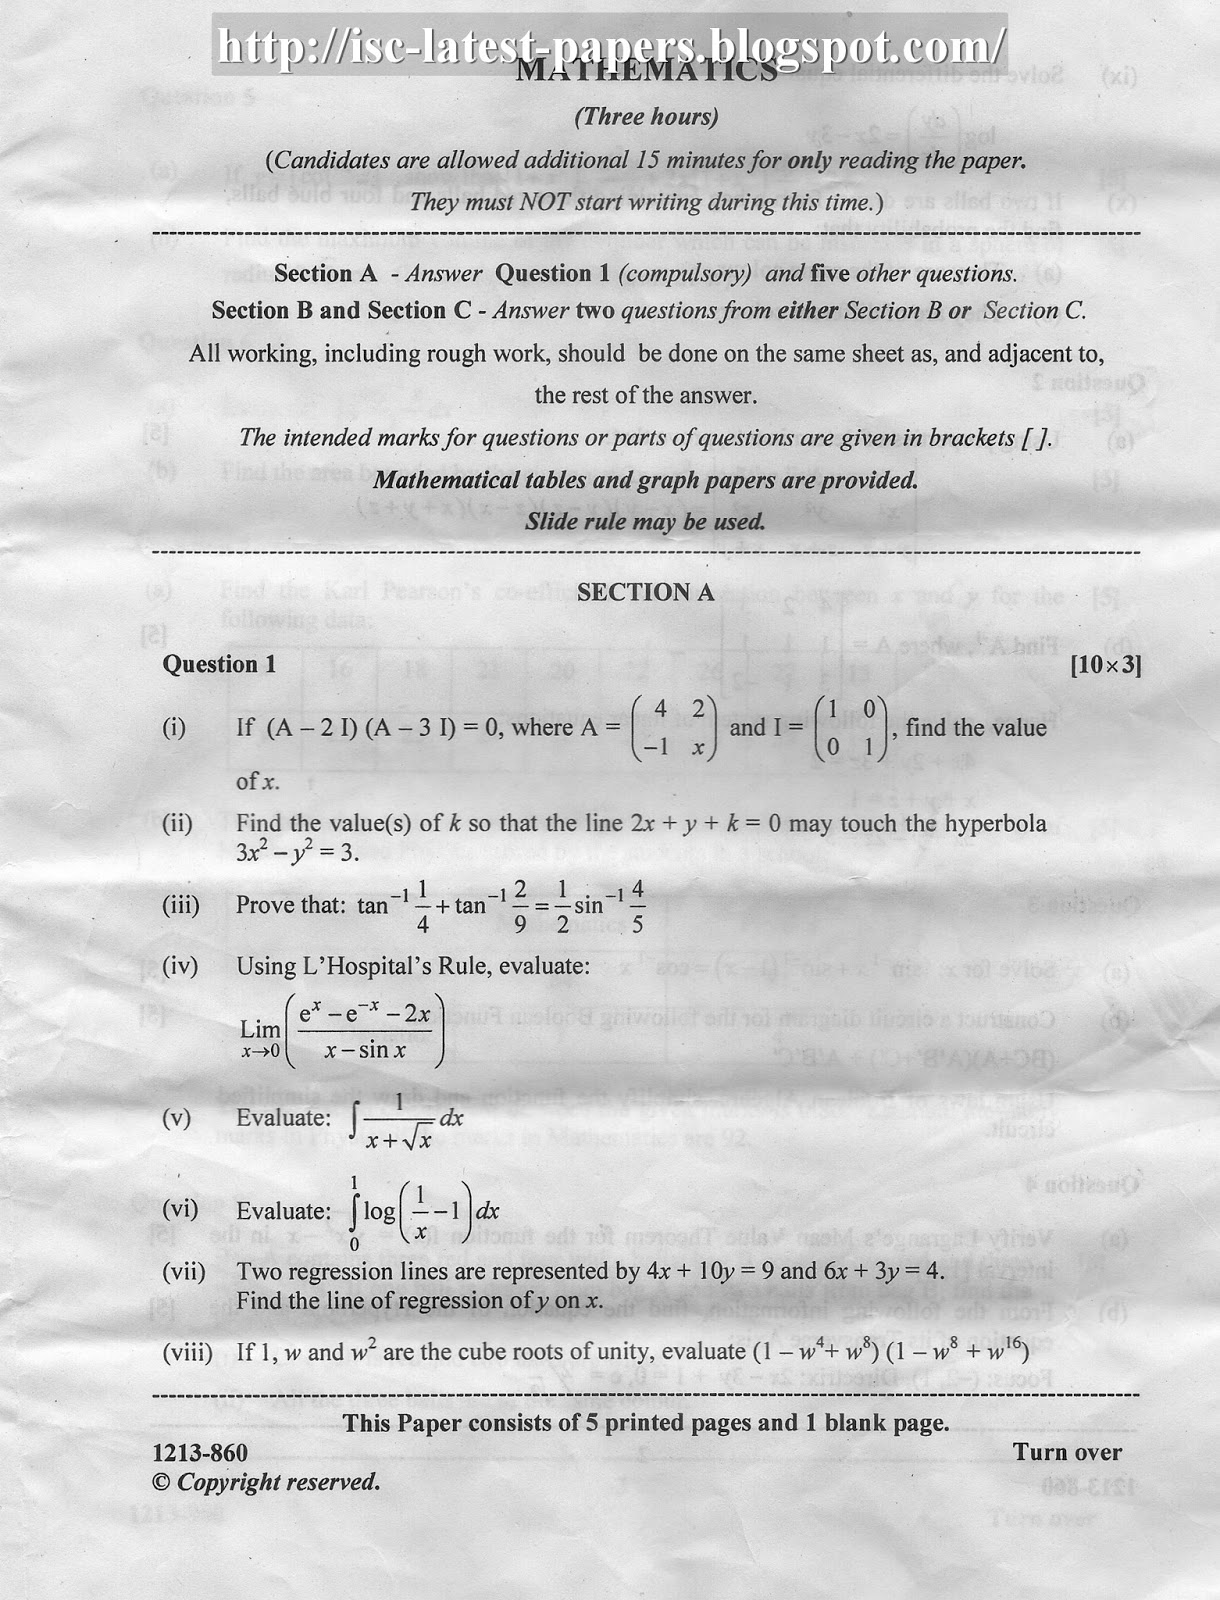 math essay essay on rabbit proof fence essay question cartoon